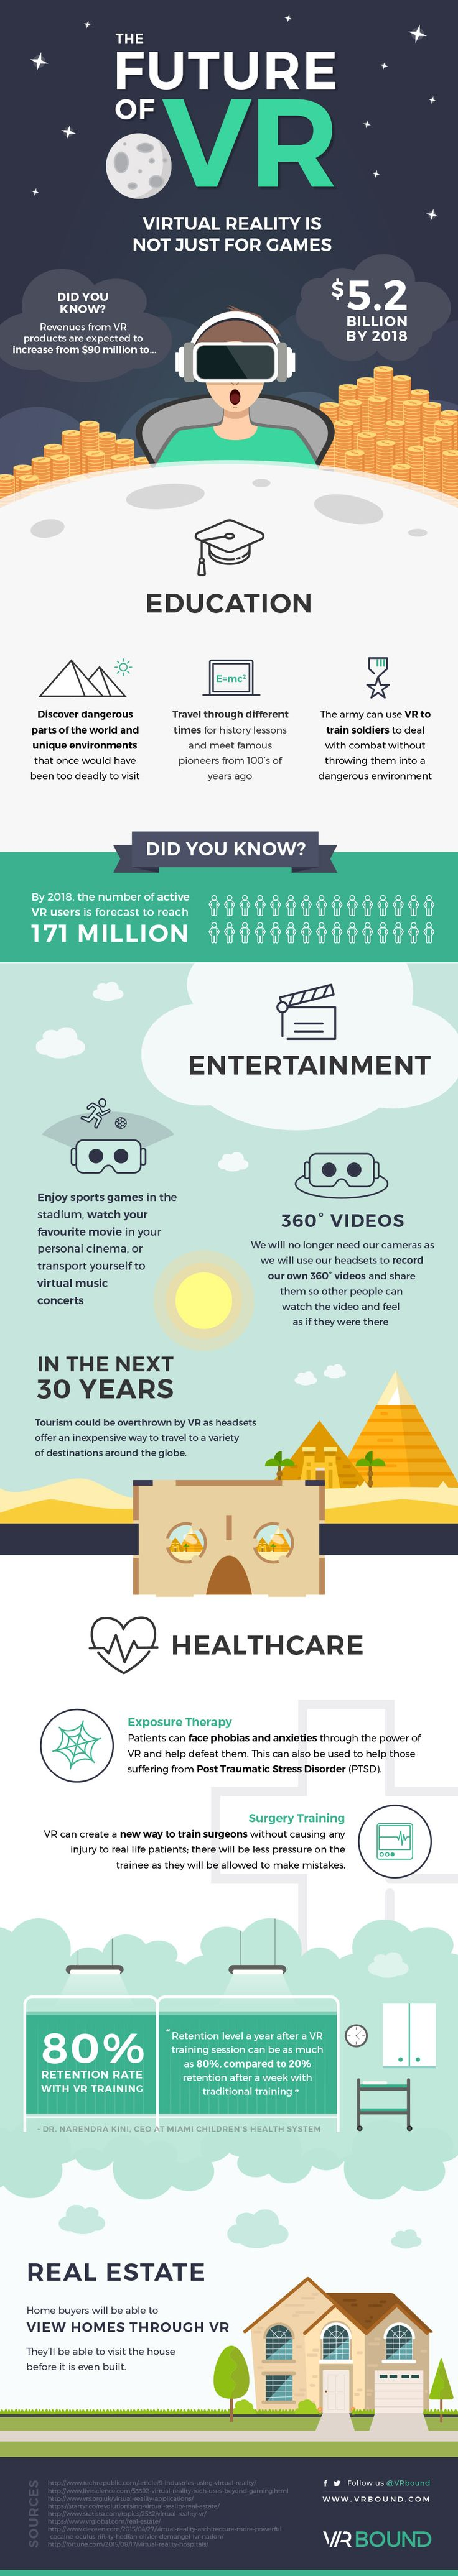 The Future of VR Infographic - 2